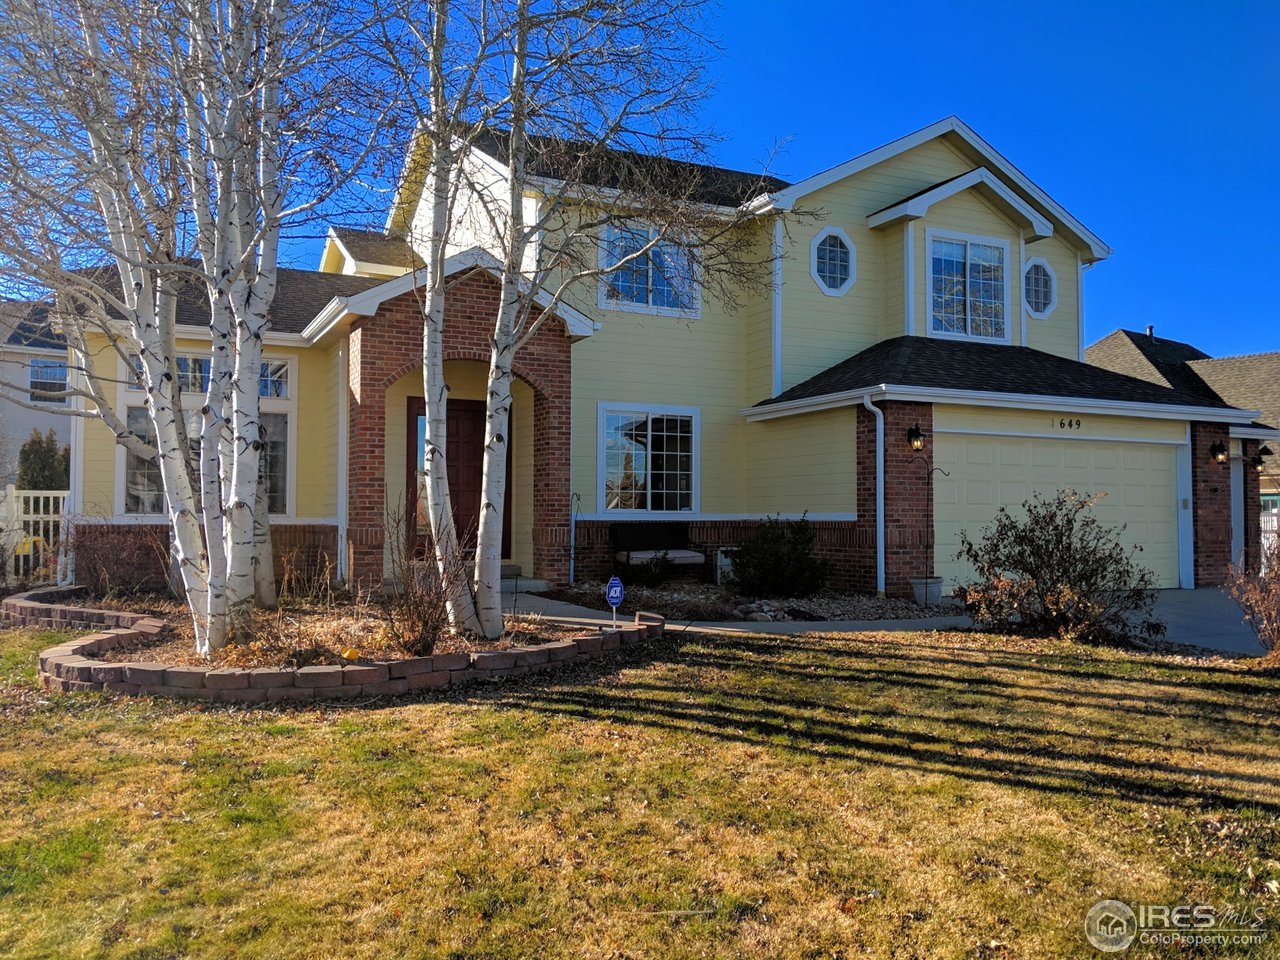 649 52nd Ave, Greeley CO 80634